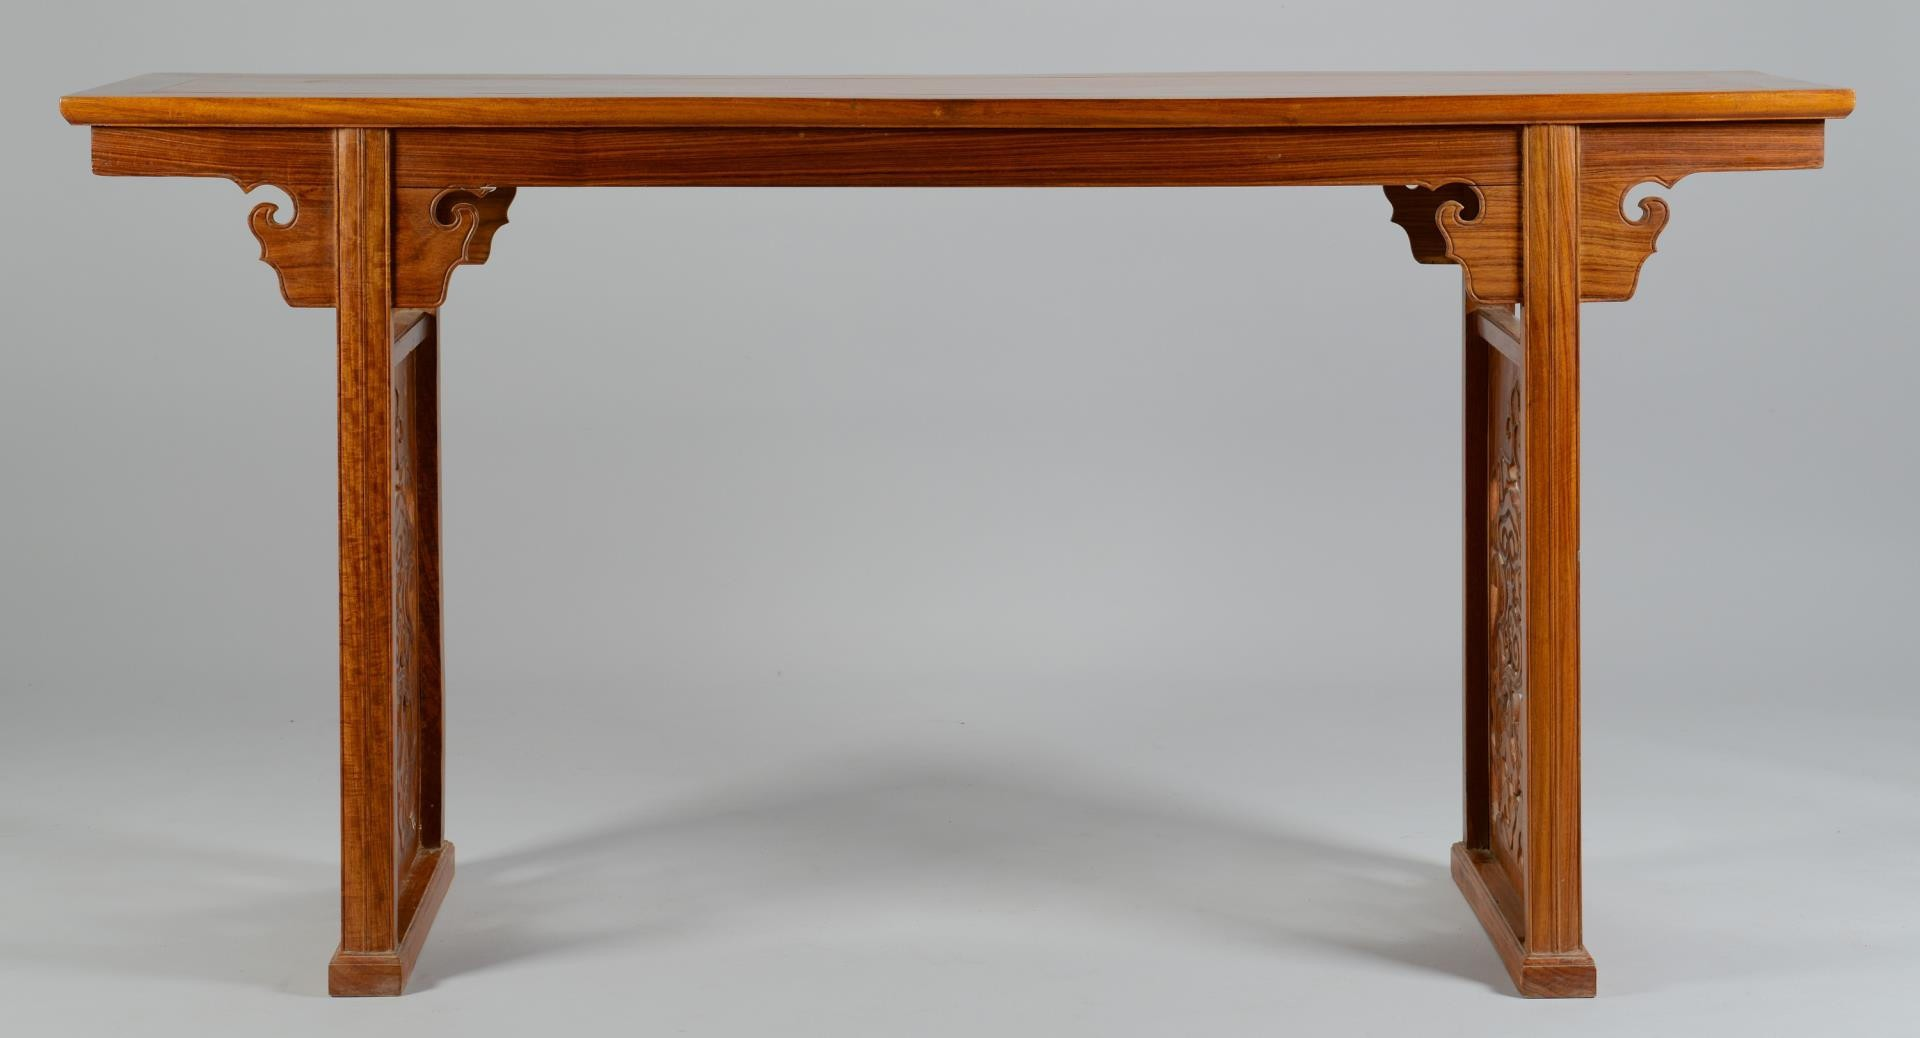 Lot 3594215: Chinese Altar Table